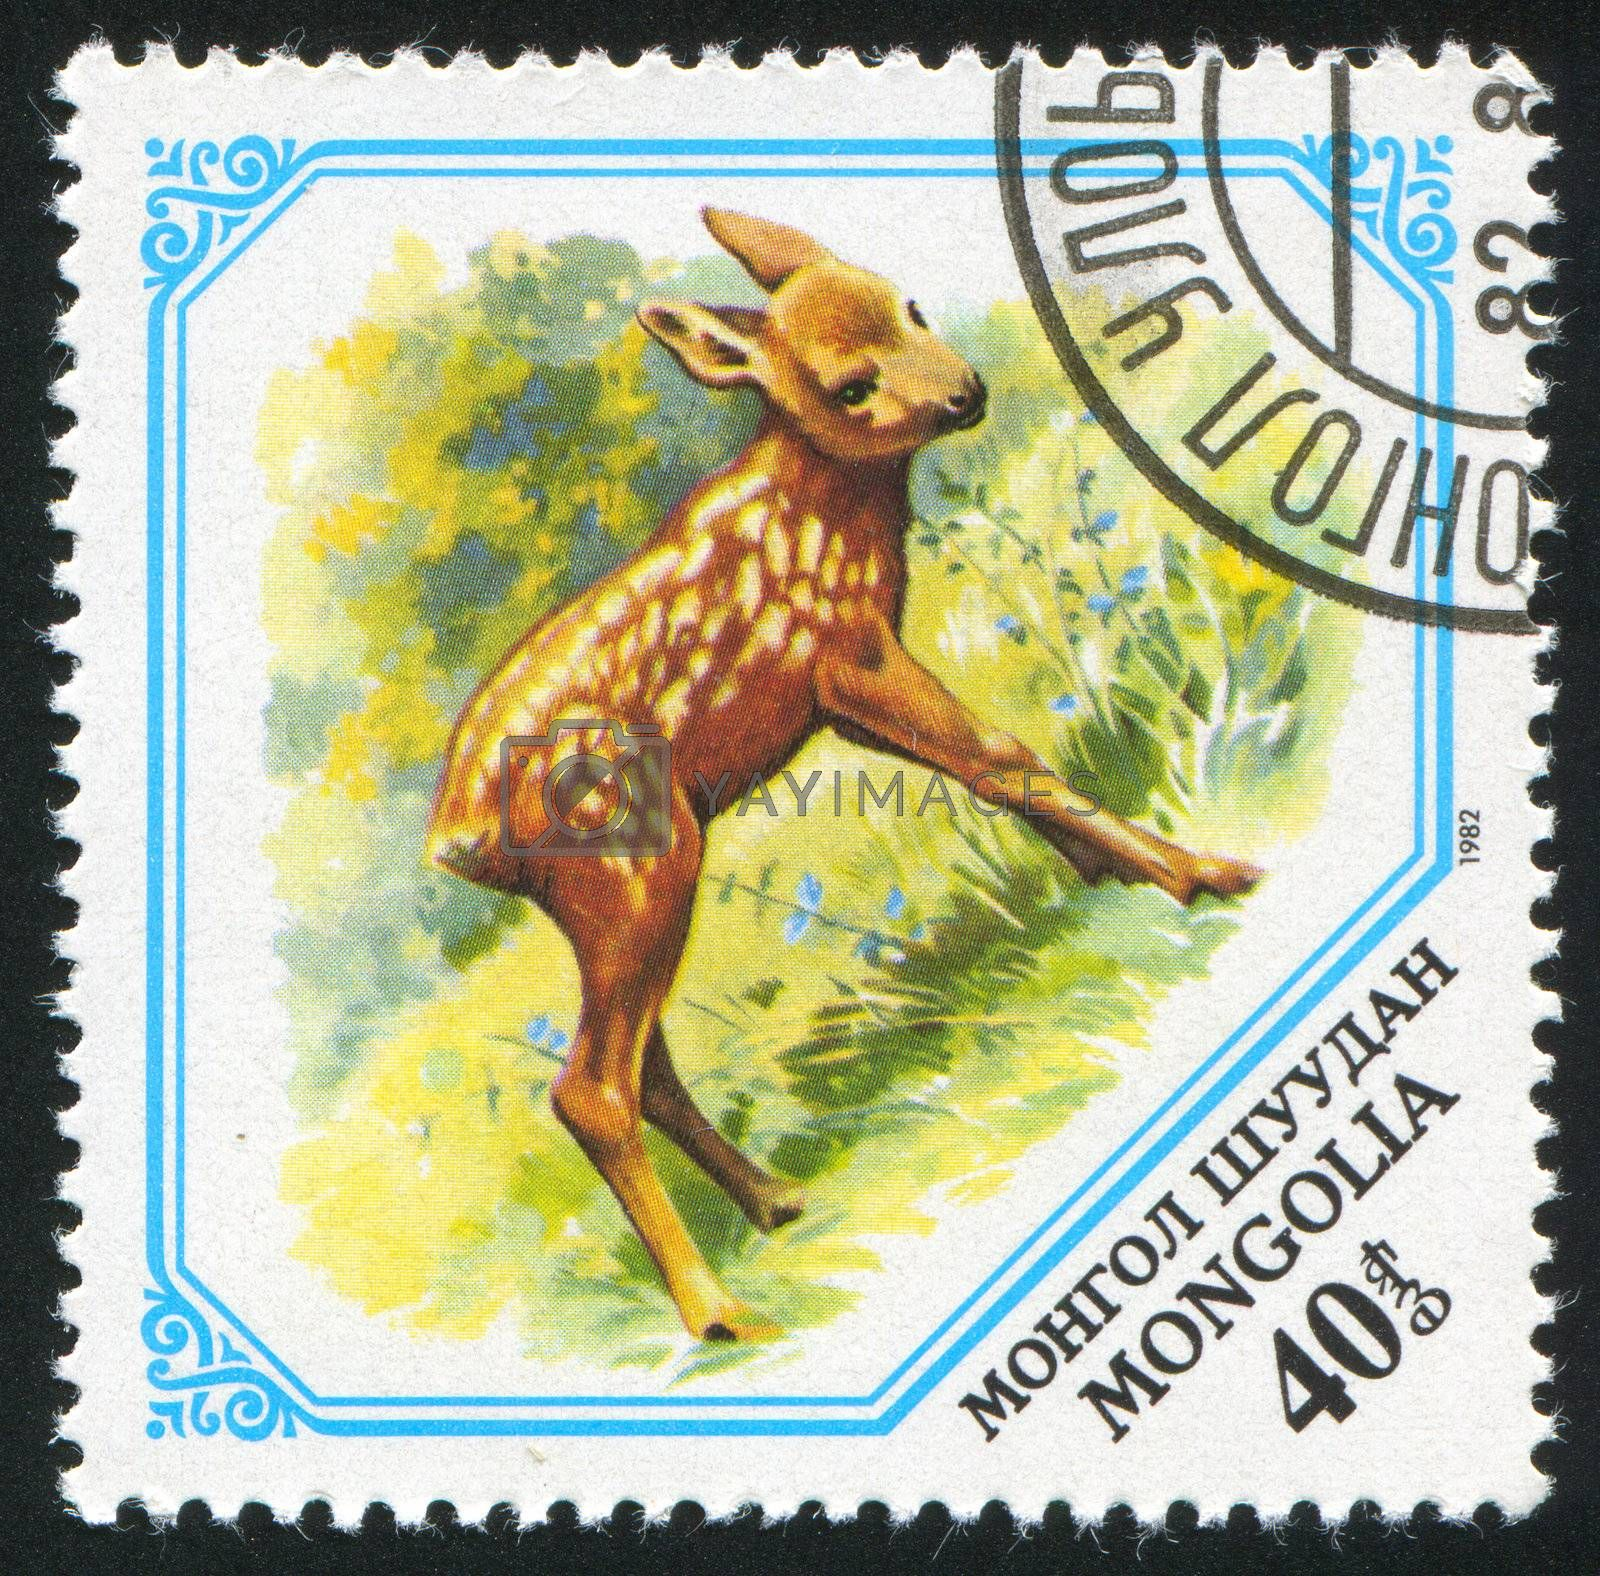 MONGOLIA - CIRCA 1982: stamp printed by Mongolia, shows Fawn, circa 1982.